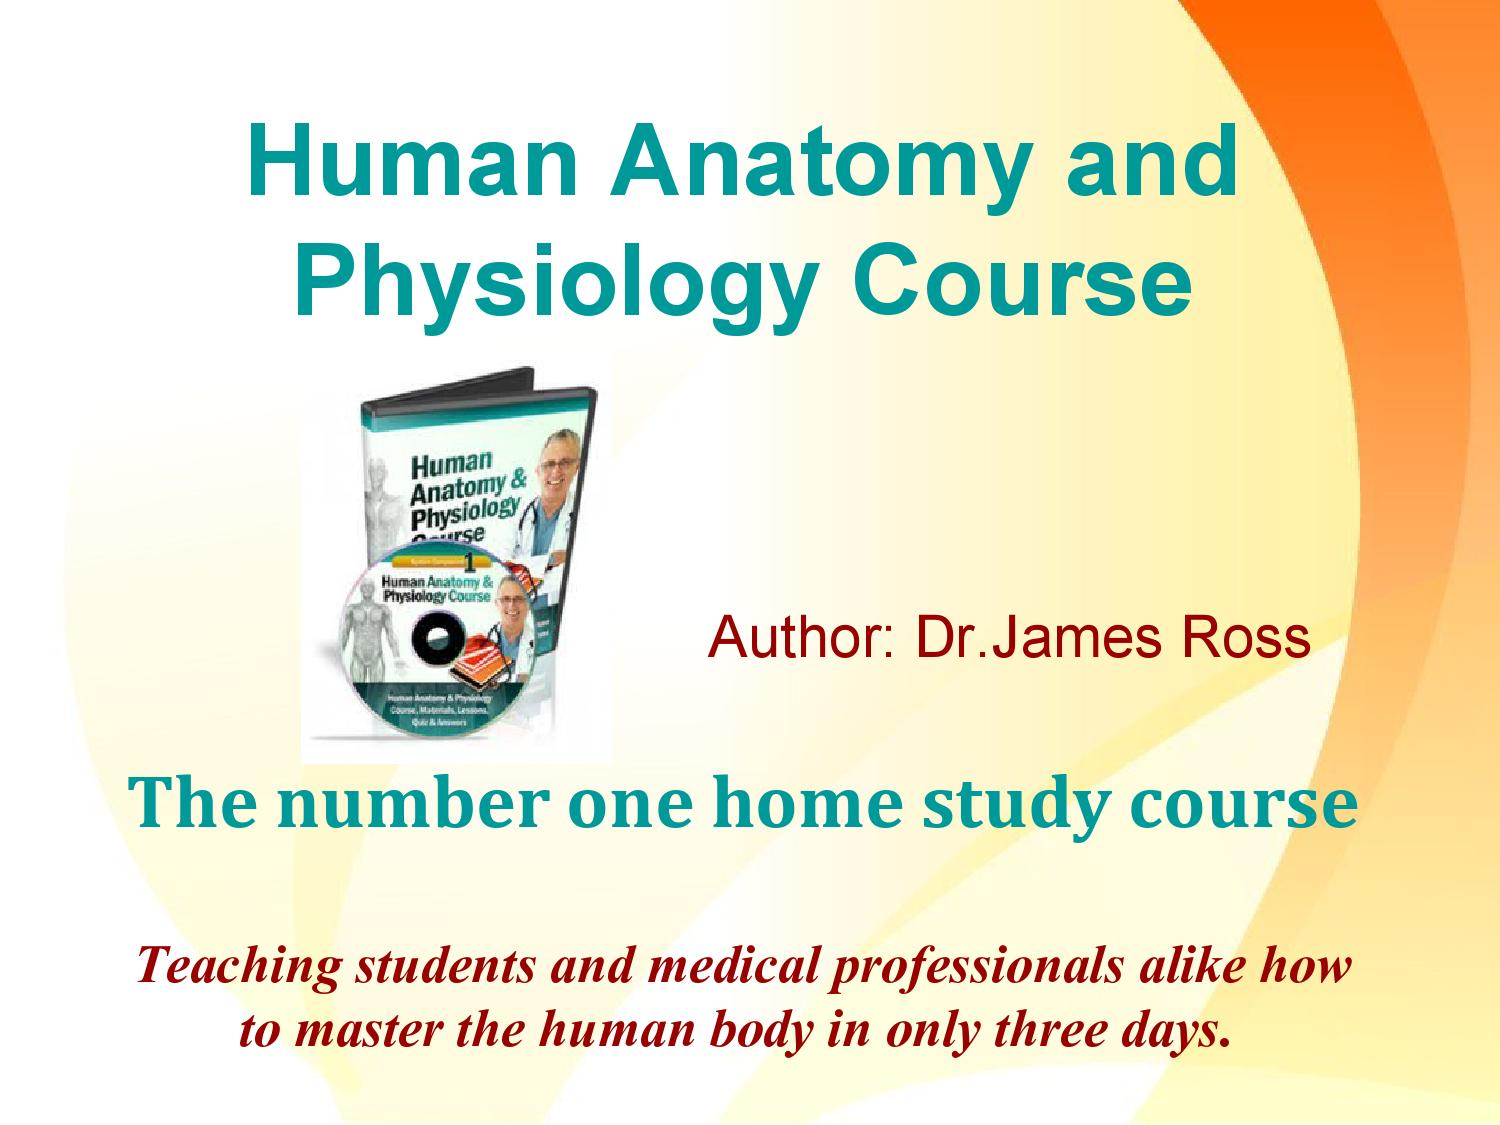 Human anatomy and physiology course review by phuongmai - issuu